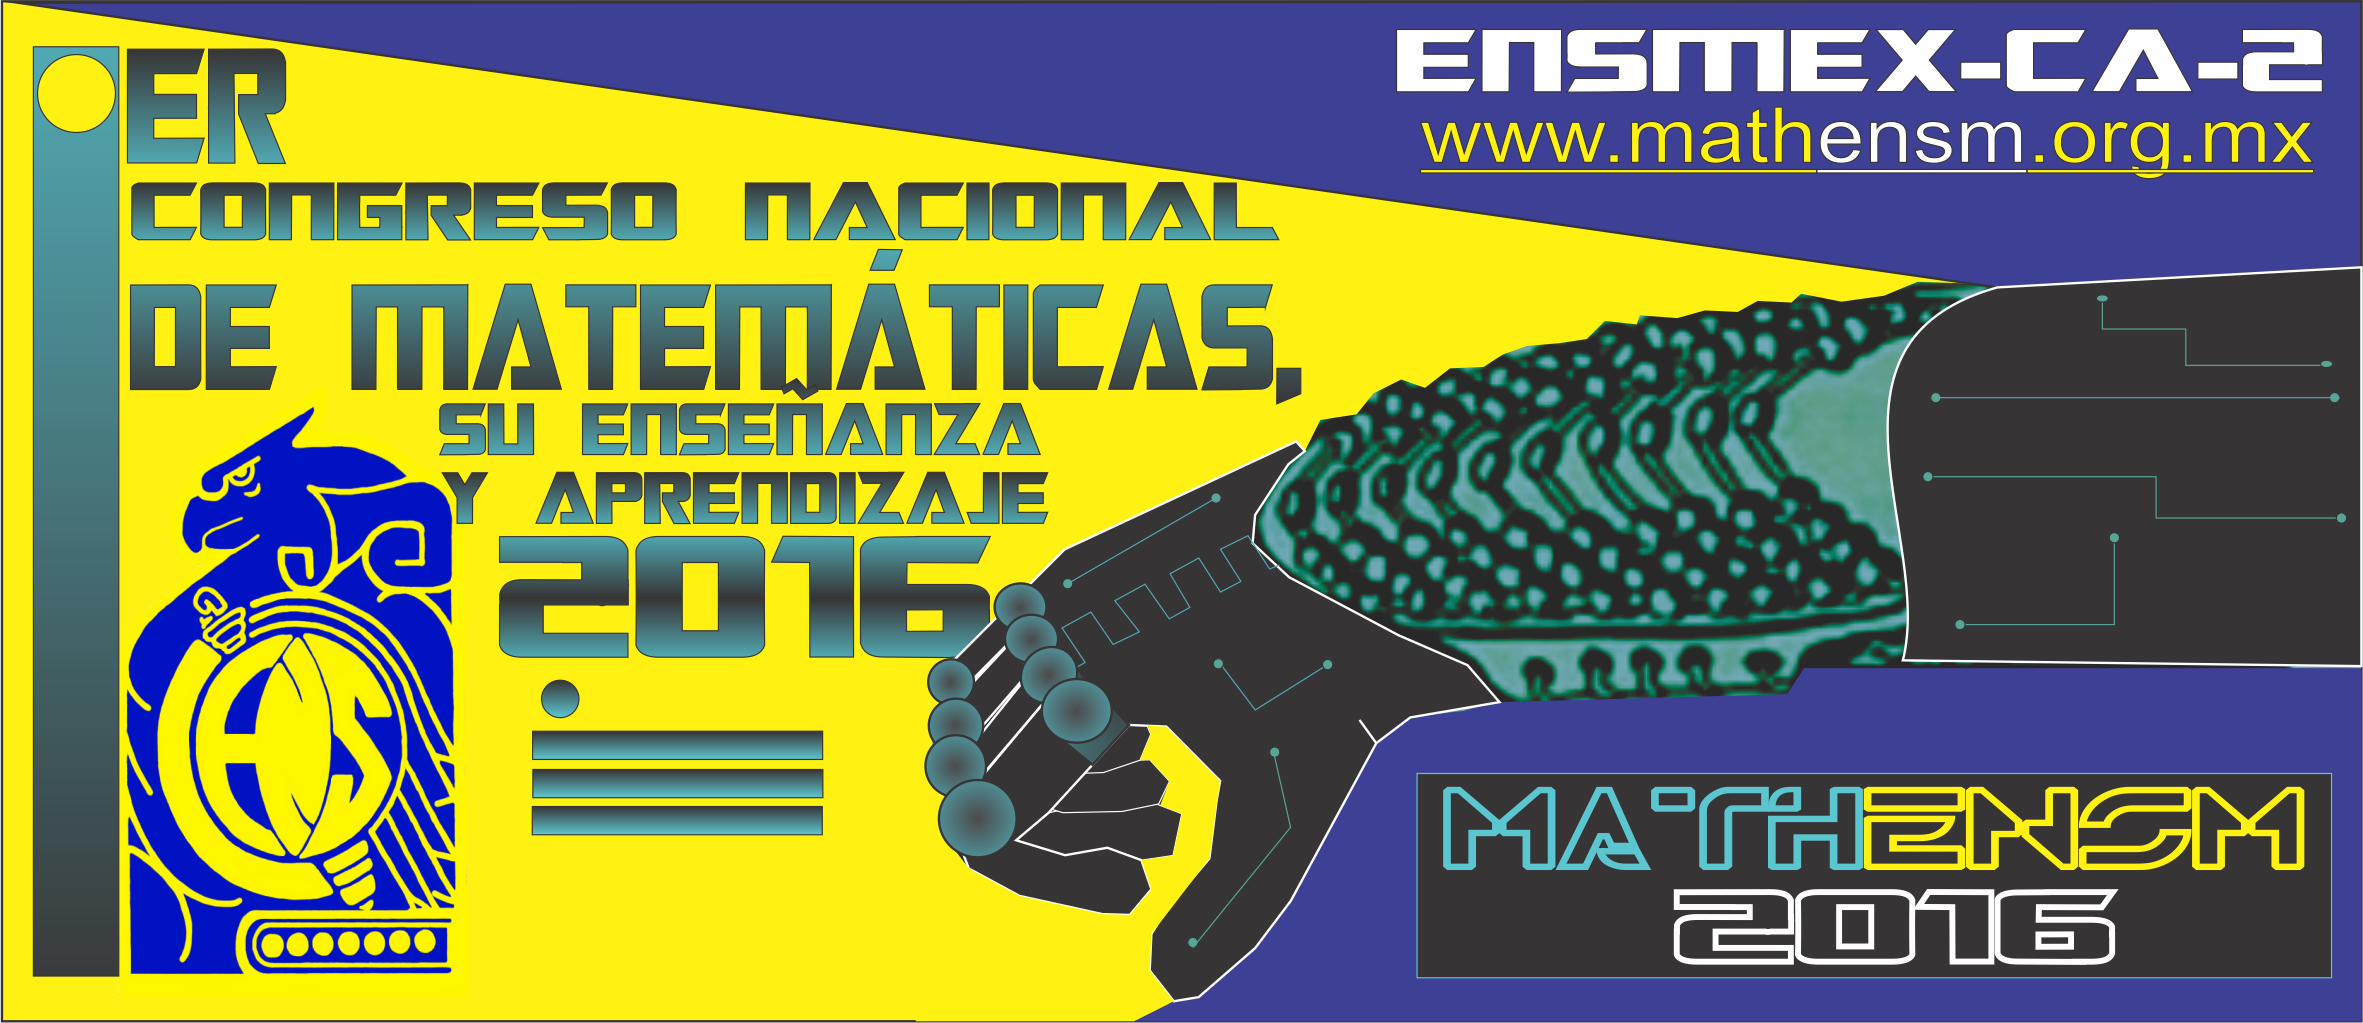 CONGRESO MATHENSM 2016